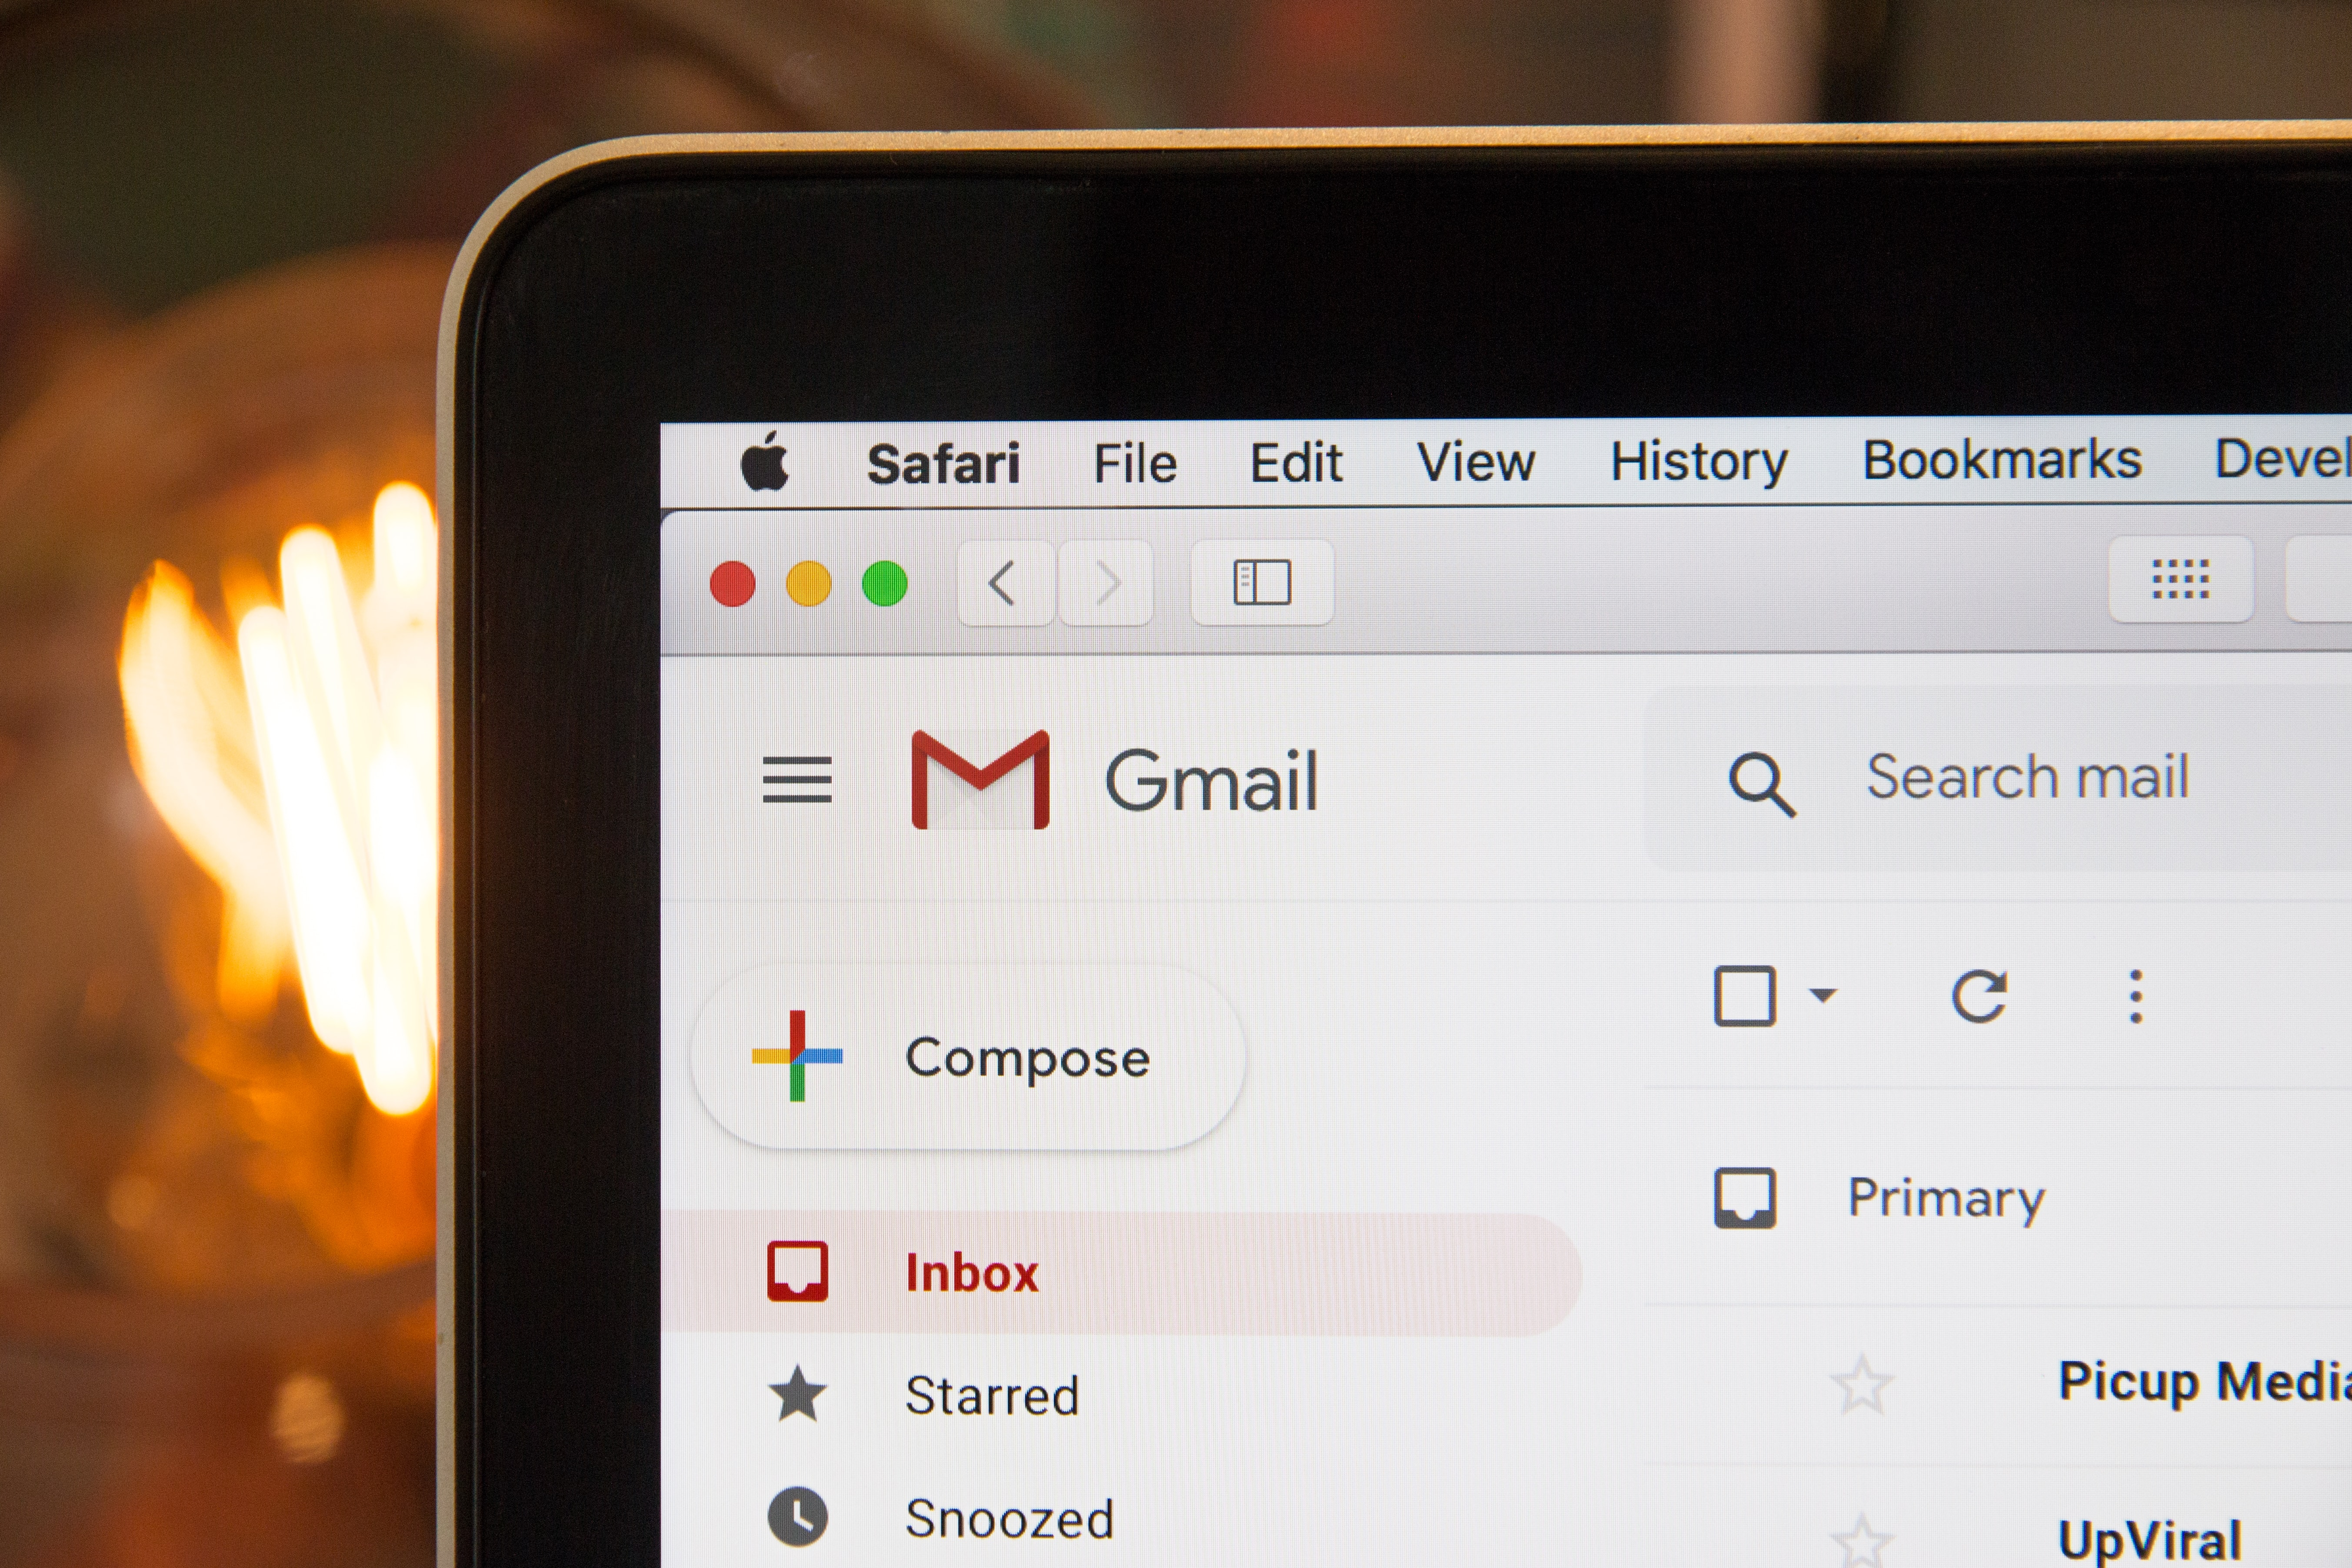 Gmail - A Free Email Service